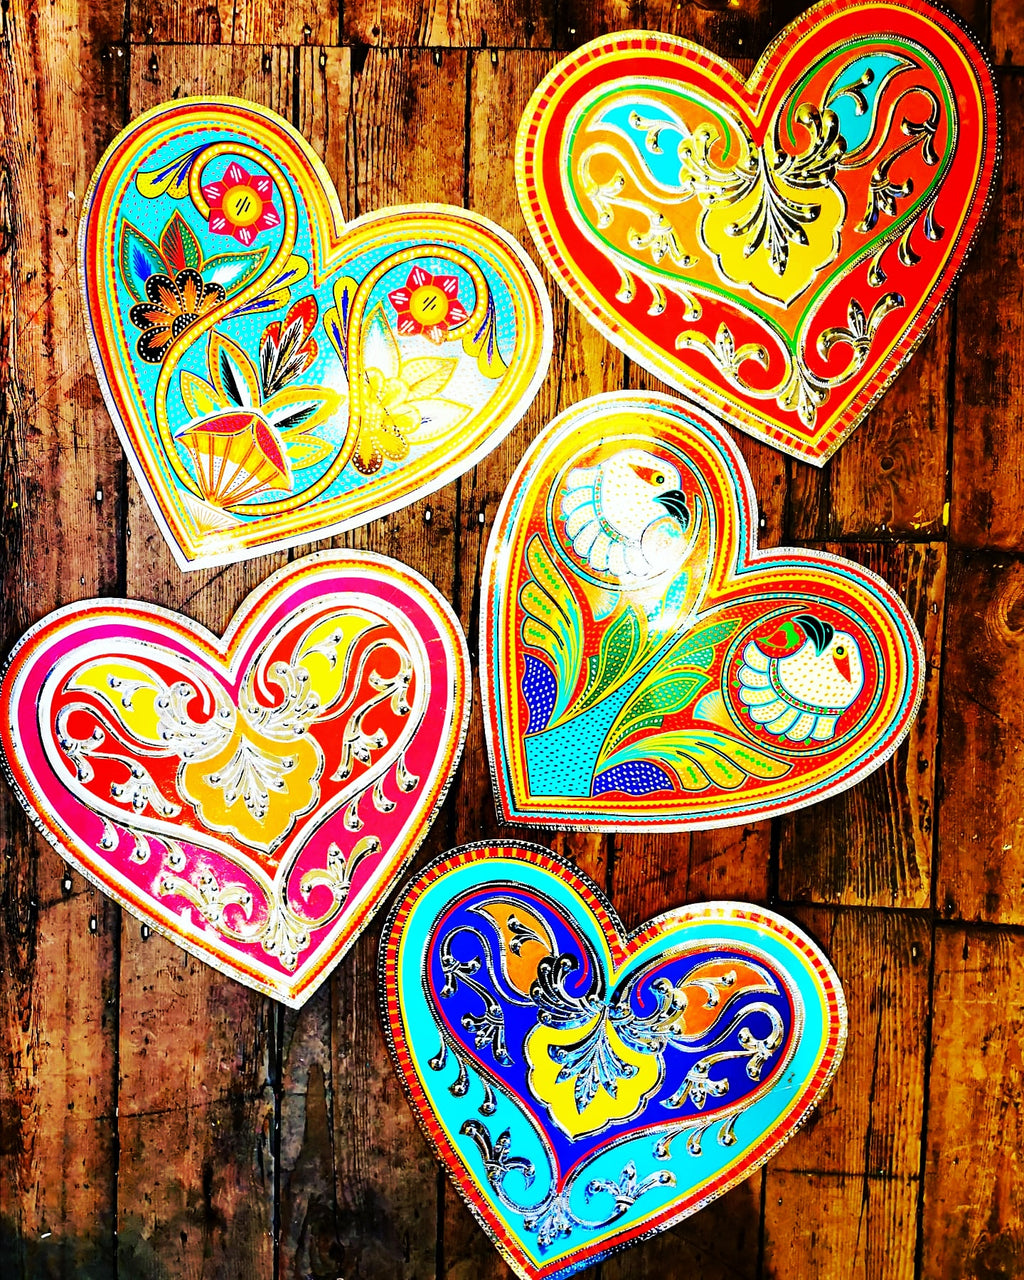 Hand made in Pakistan by the artisans that decorate the fabulously flamboyant trucks, these beautifully crafted metal plaques are decorated with hand cut reflective vinyl stickers. All so you can add a bit of folk art love to your home!  40cm x 38cm